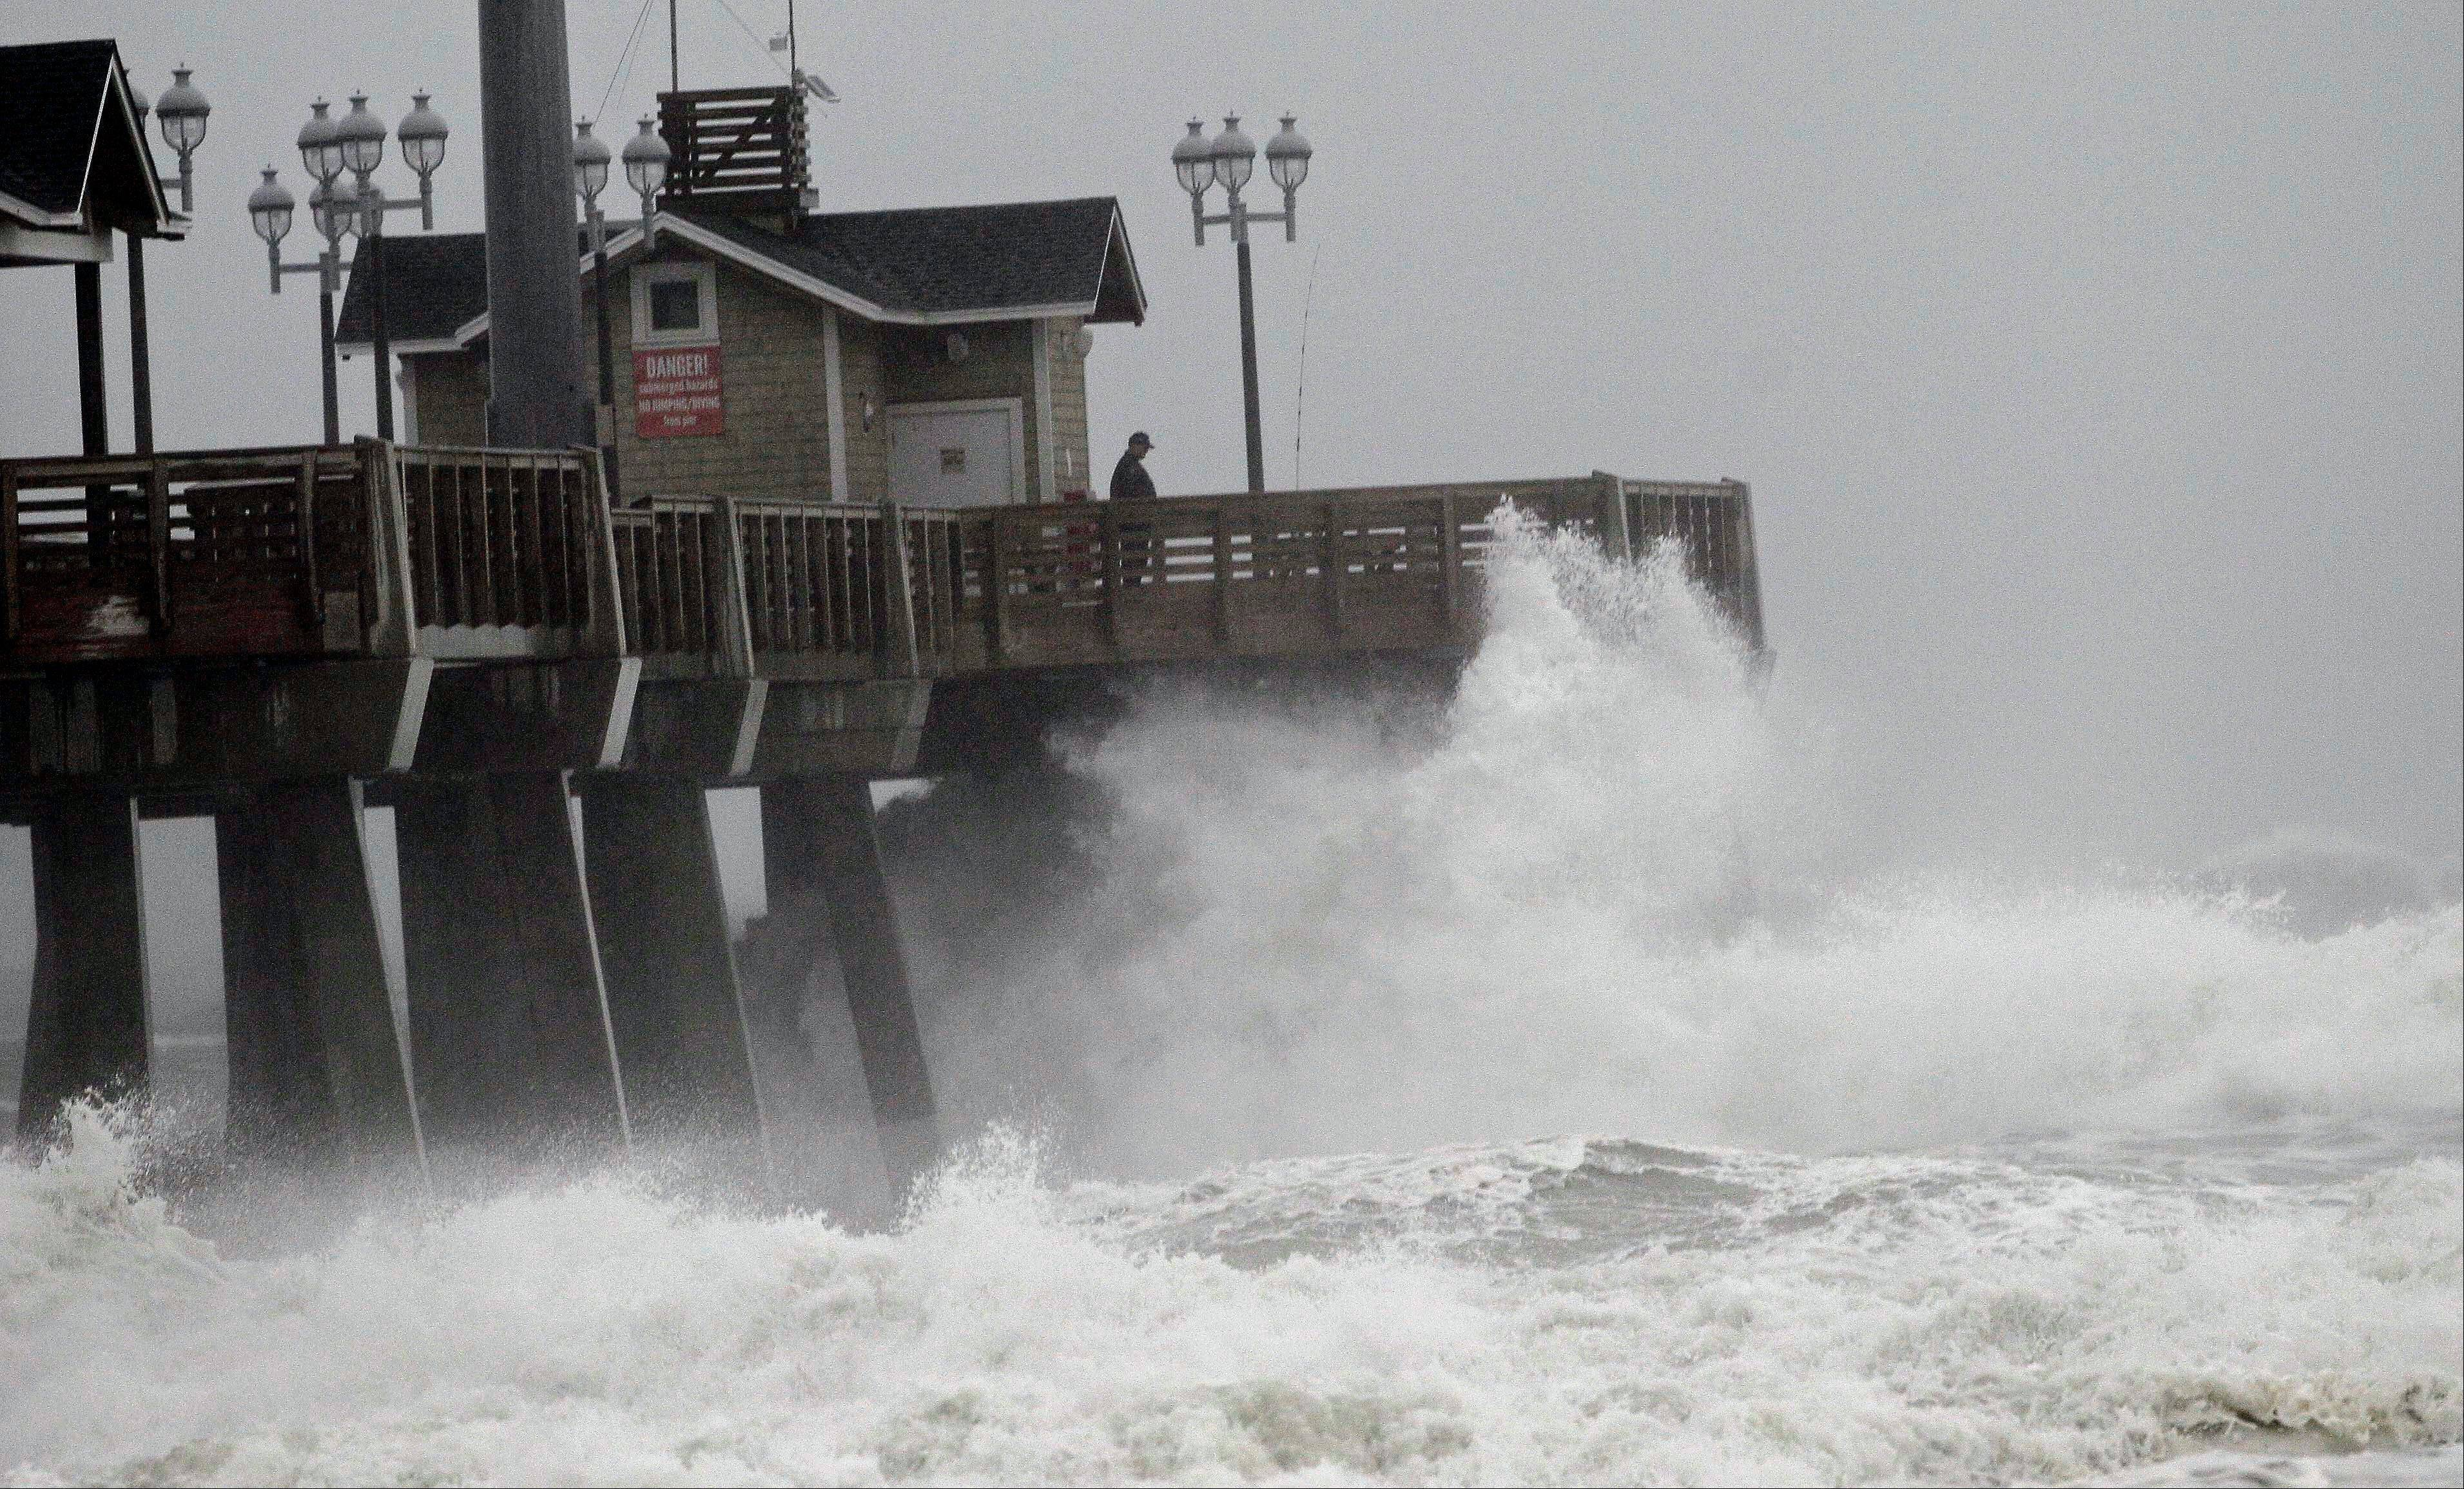 Large waves generated by Hurricane Sandy crash into Jeanette's Pier in Nags Head, N.C., on Saturday as the storm moved up the East Coast. Hurricane Sandy, upgraded again Saturday just hours after forecasters said it had weakened to a tropical storm, was barreling north from the Caribbean and was expected to make landfall early Tuesday near the Delaware coast, then hit two winter weather systems as it moves inland, creating a hybrid monster storm.